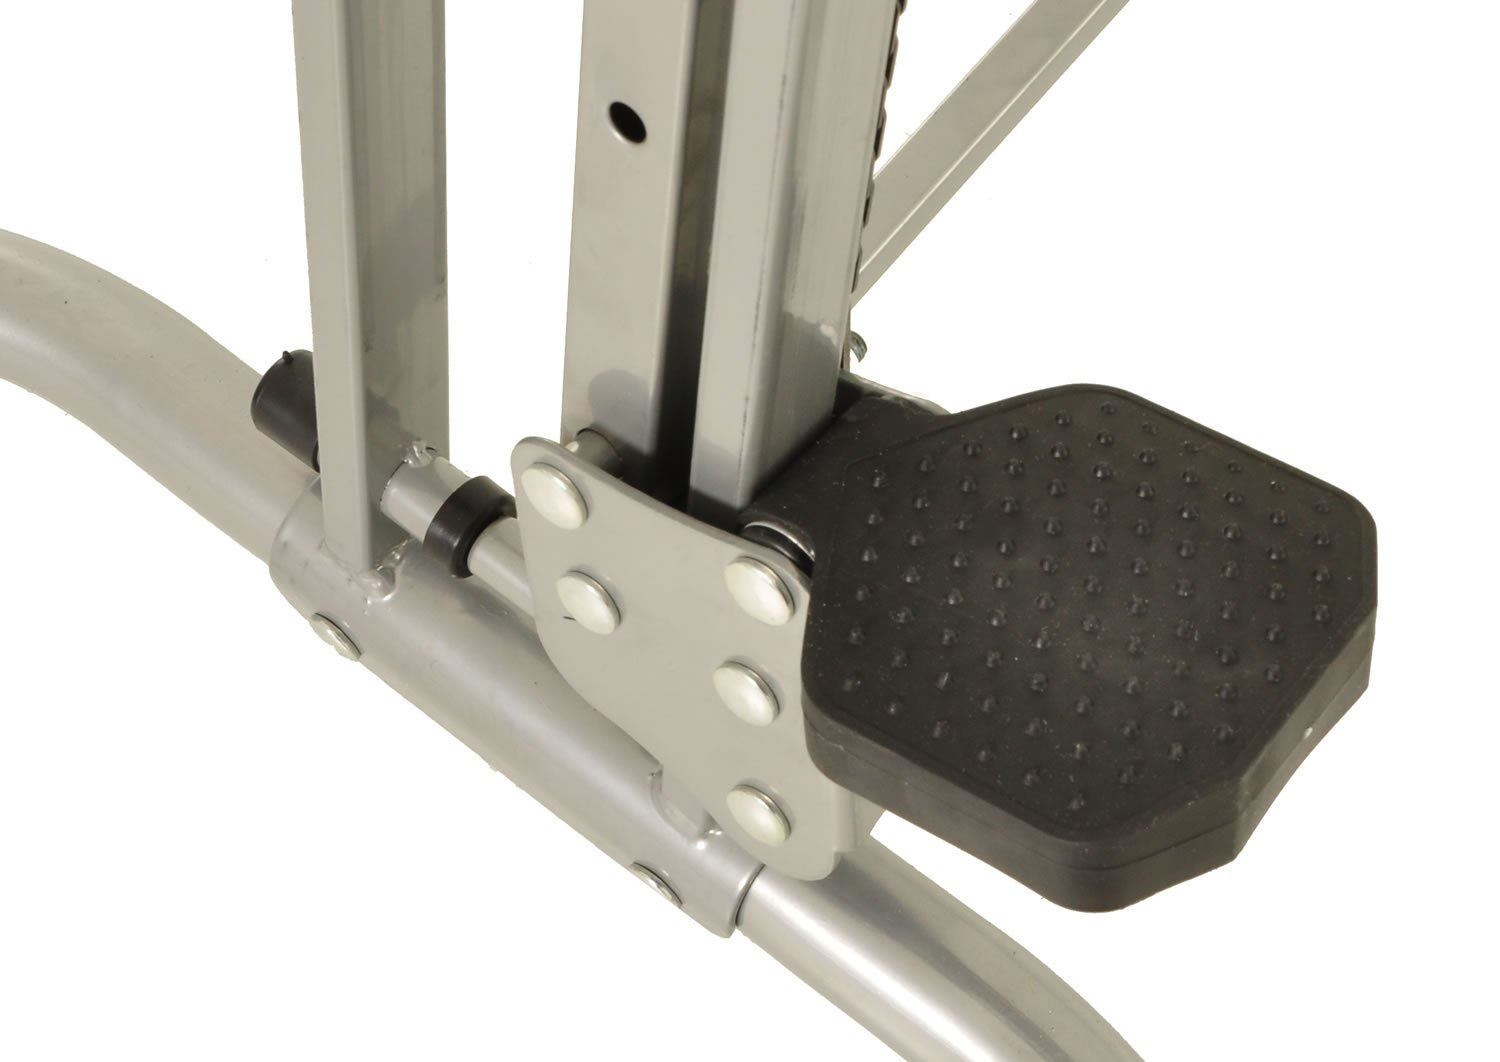 Conquer Vertical Climber Fitness Climbing Machine by Conquer (Image #6)